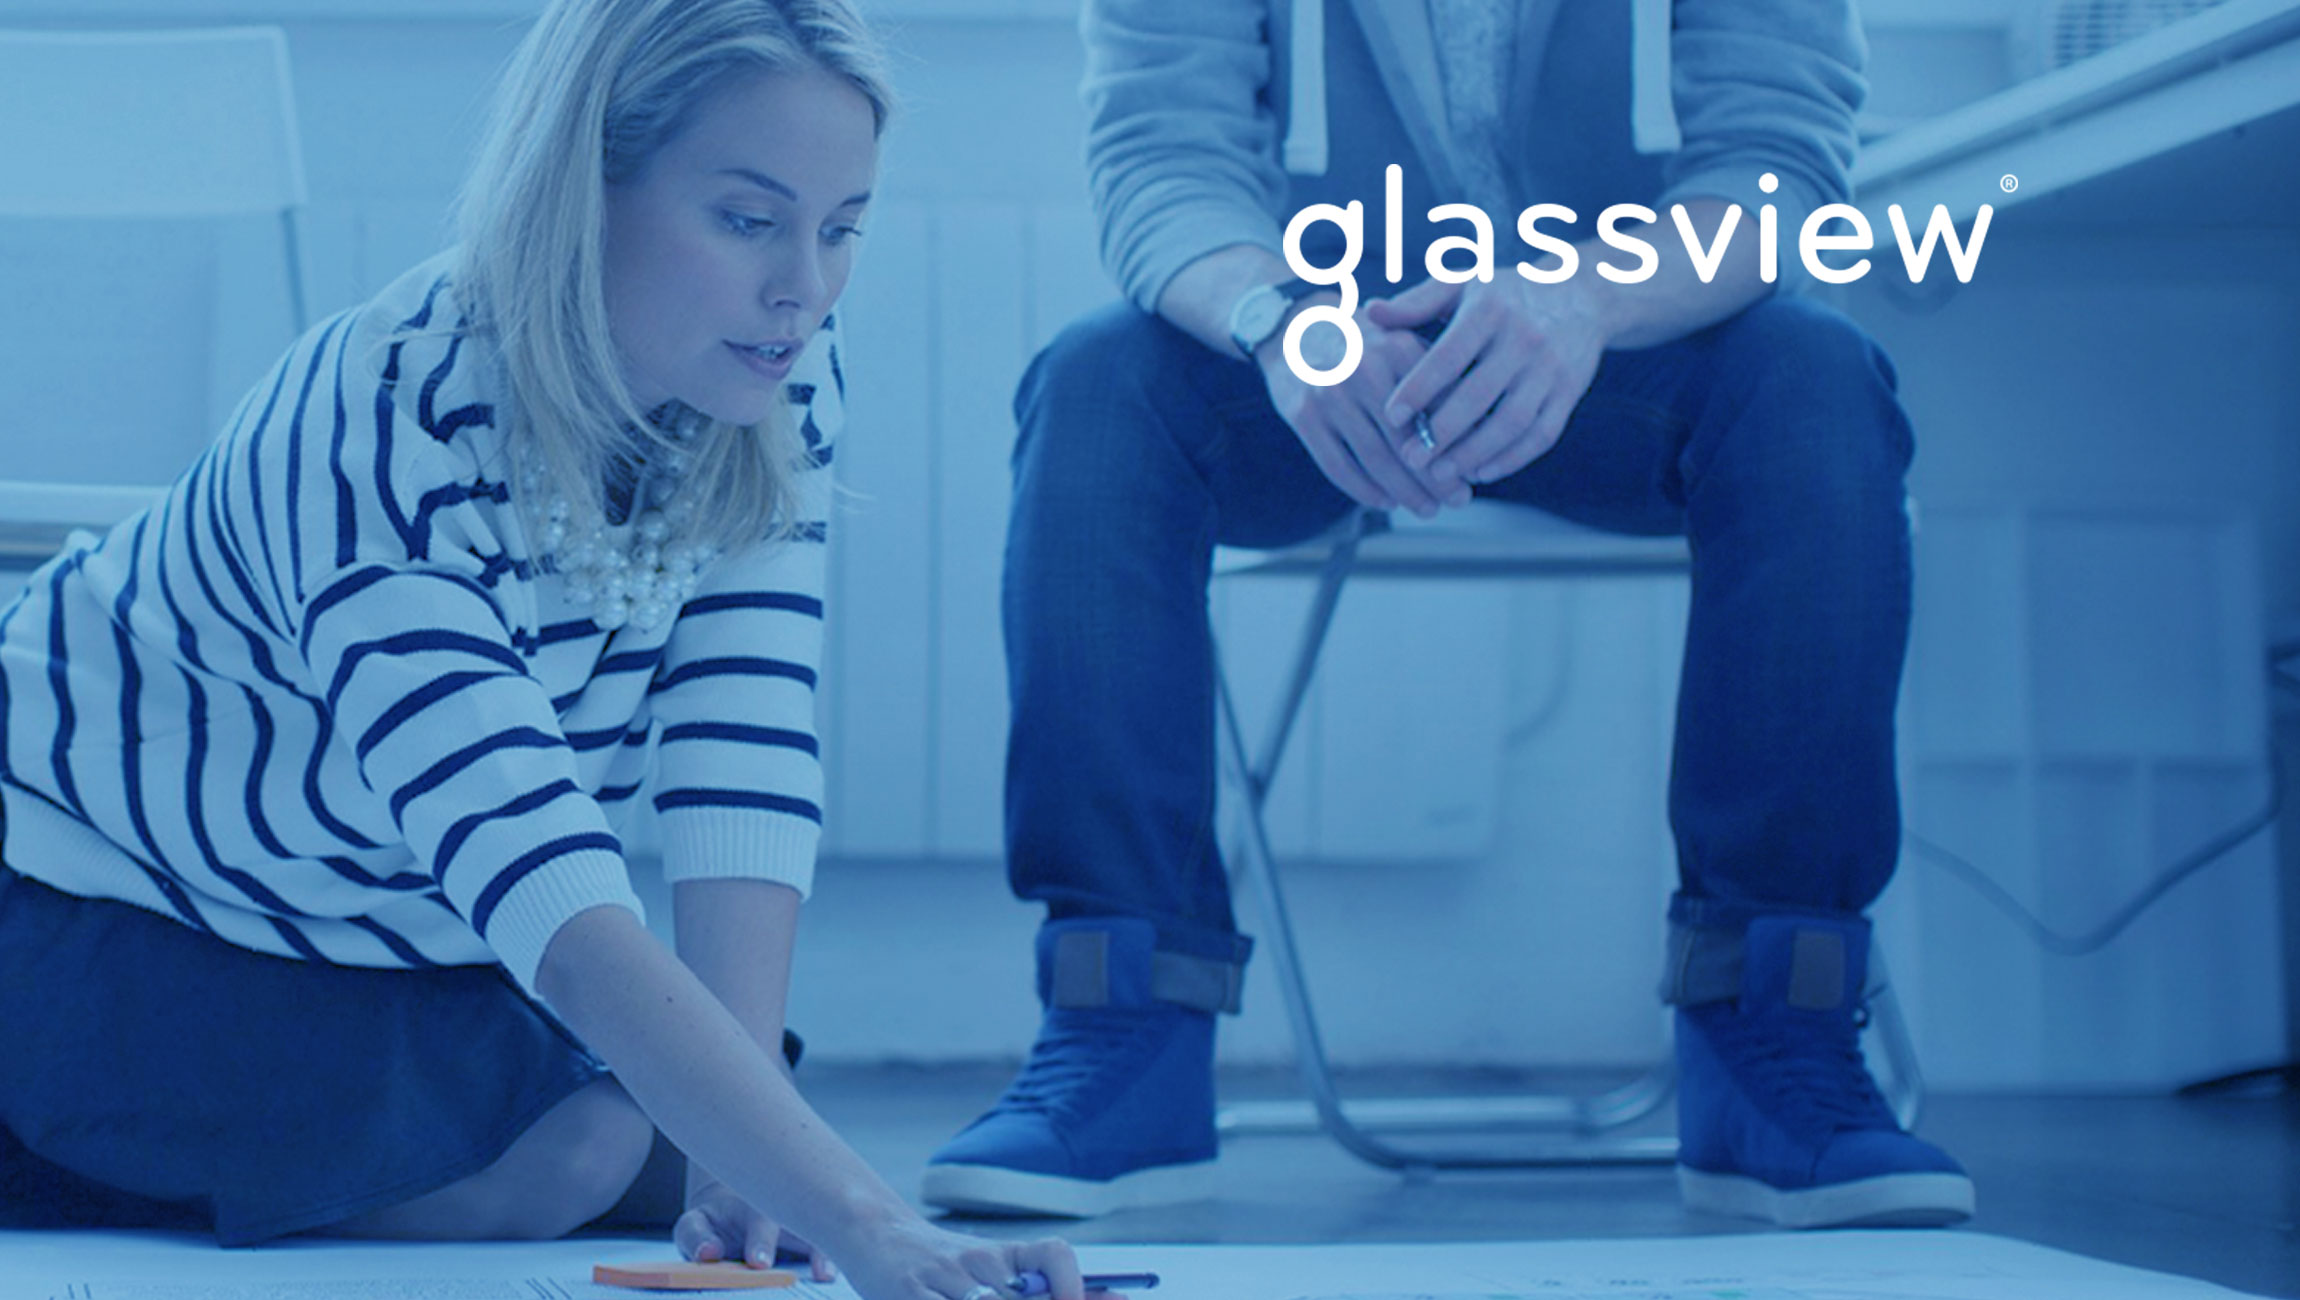 GlassView Bolsters its Performance Focus With the Launch of Ecko, its New Customer Lifetime Value Product